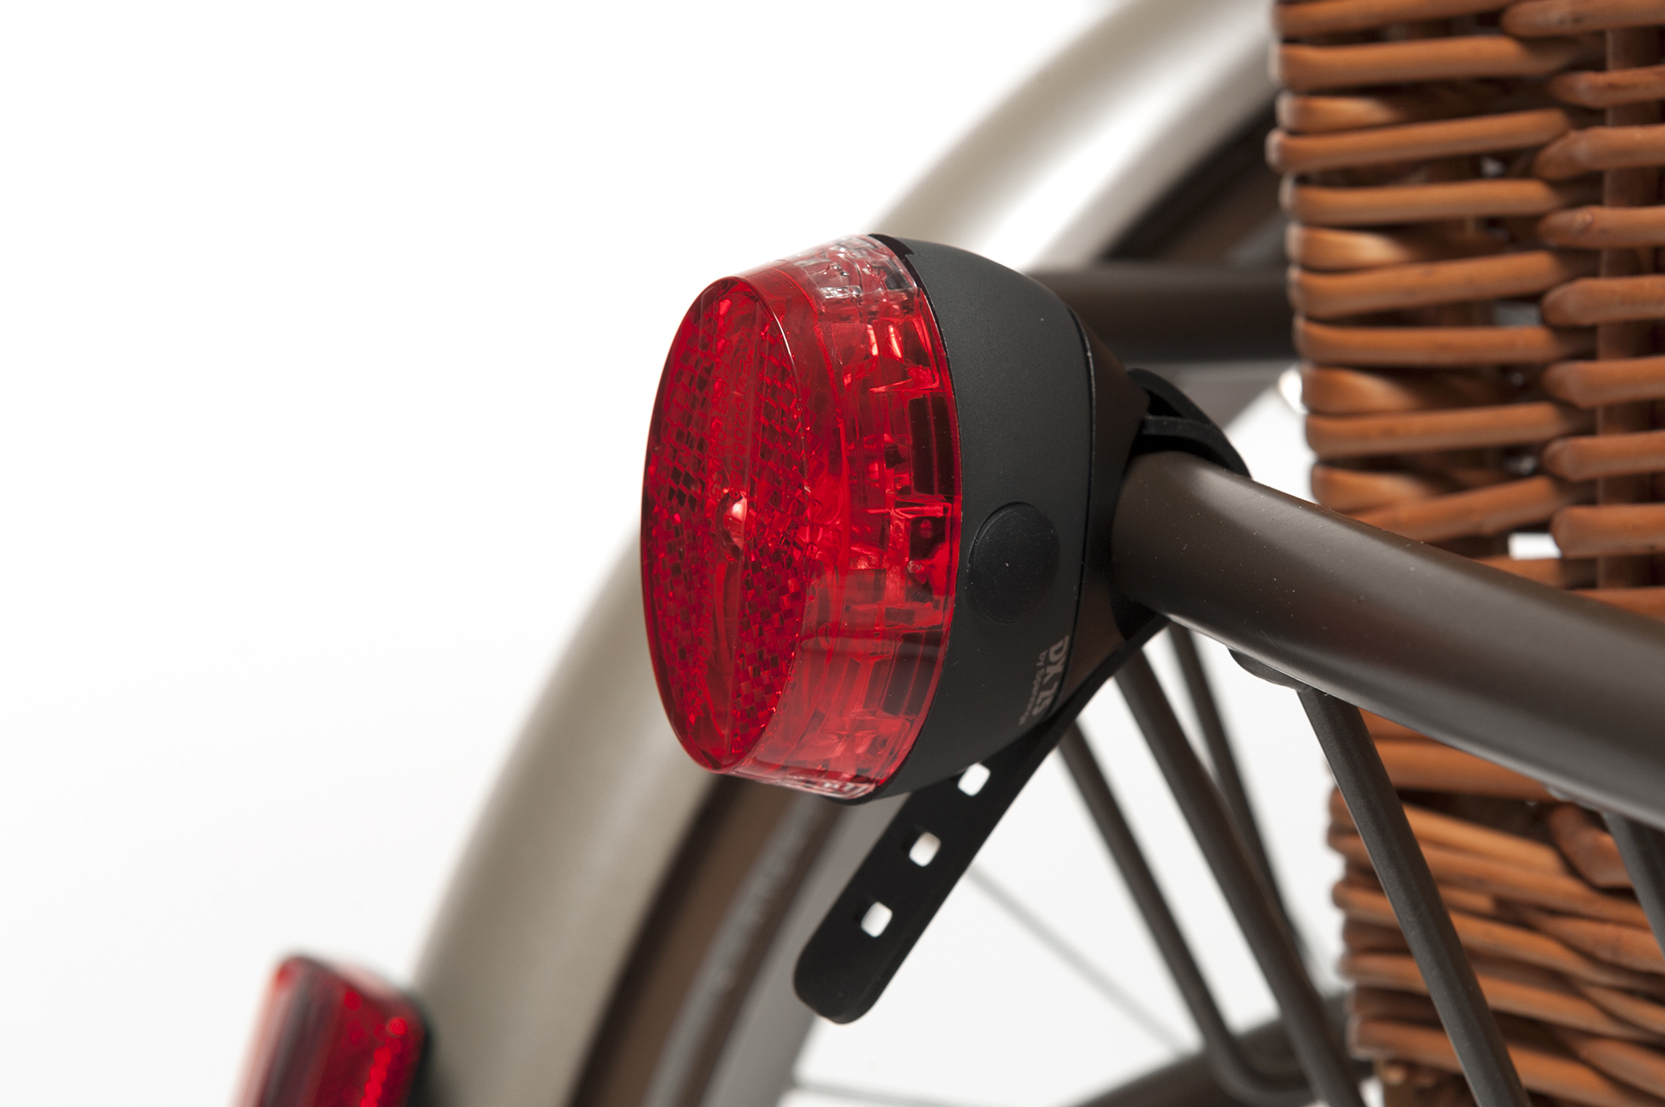 E2_-_rear_light